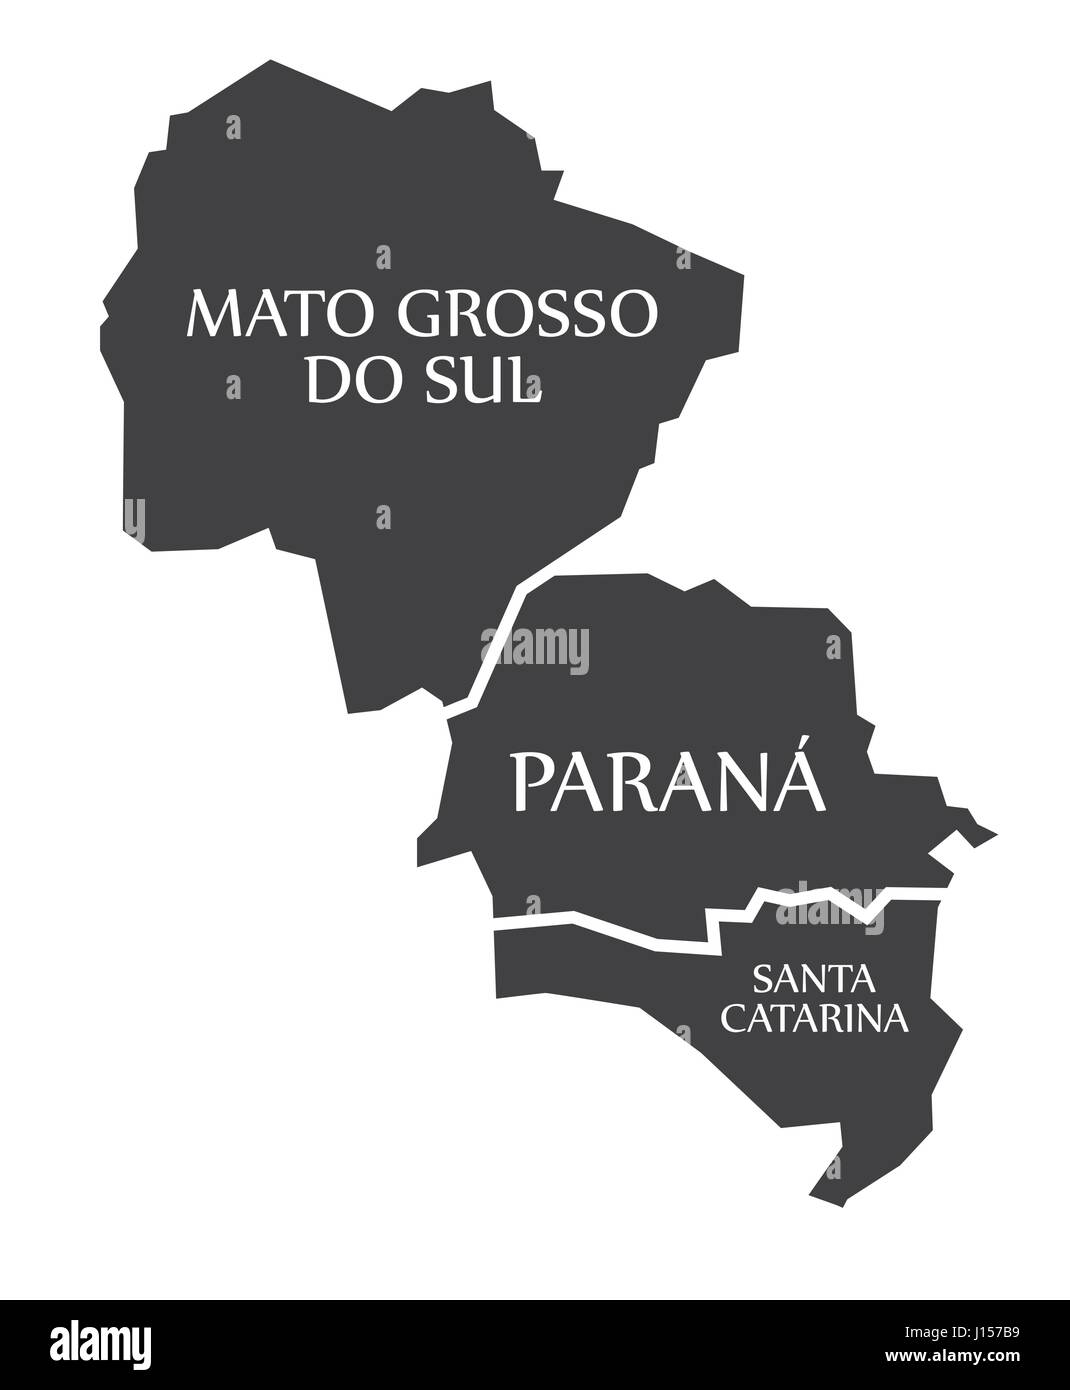 Mato Grosso do sul - Parana - Santa Catarina Map Brazil illustration Stock Vector